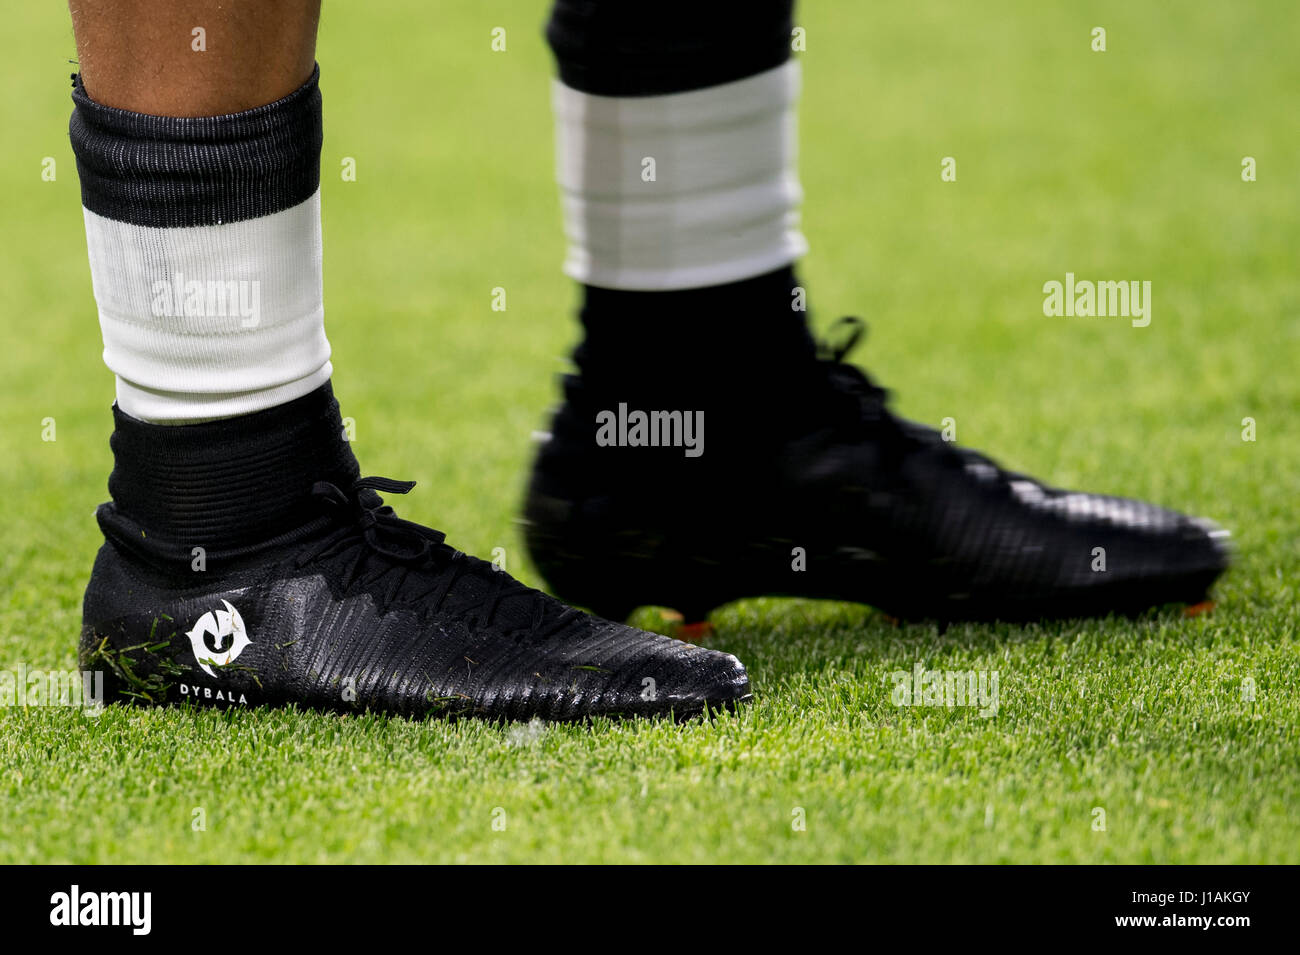 25327fb9baa Paulo Dybala (Juventus) Football Soccer   The detail shot of the boots of Paulo  Dybala of Juventus before the UEFA Champions League Quarter-finals 1st leg  ...